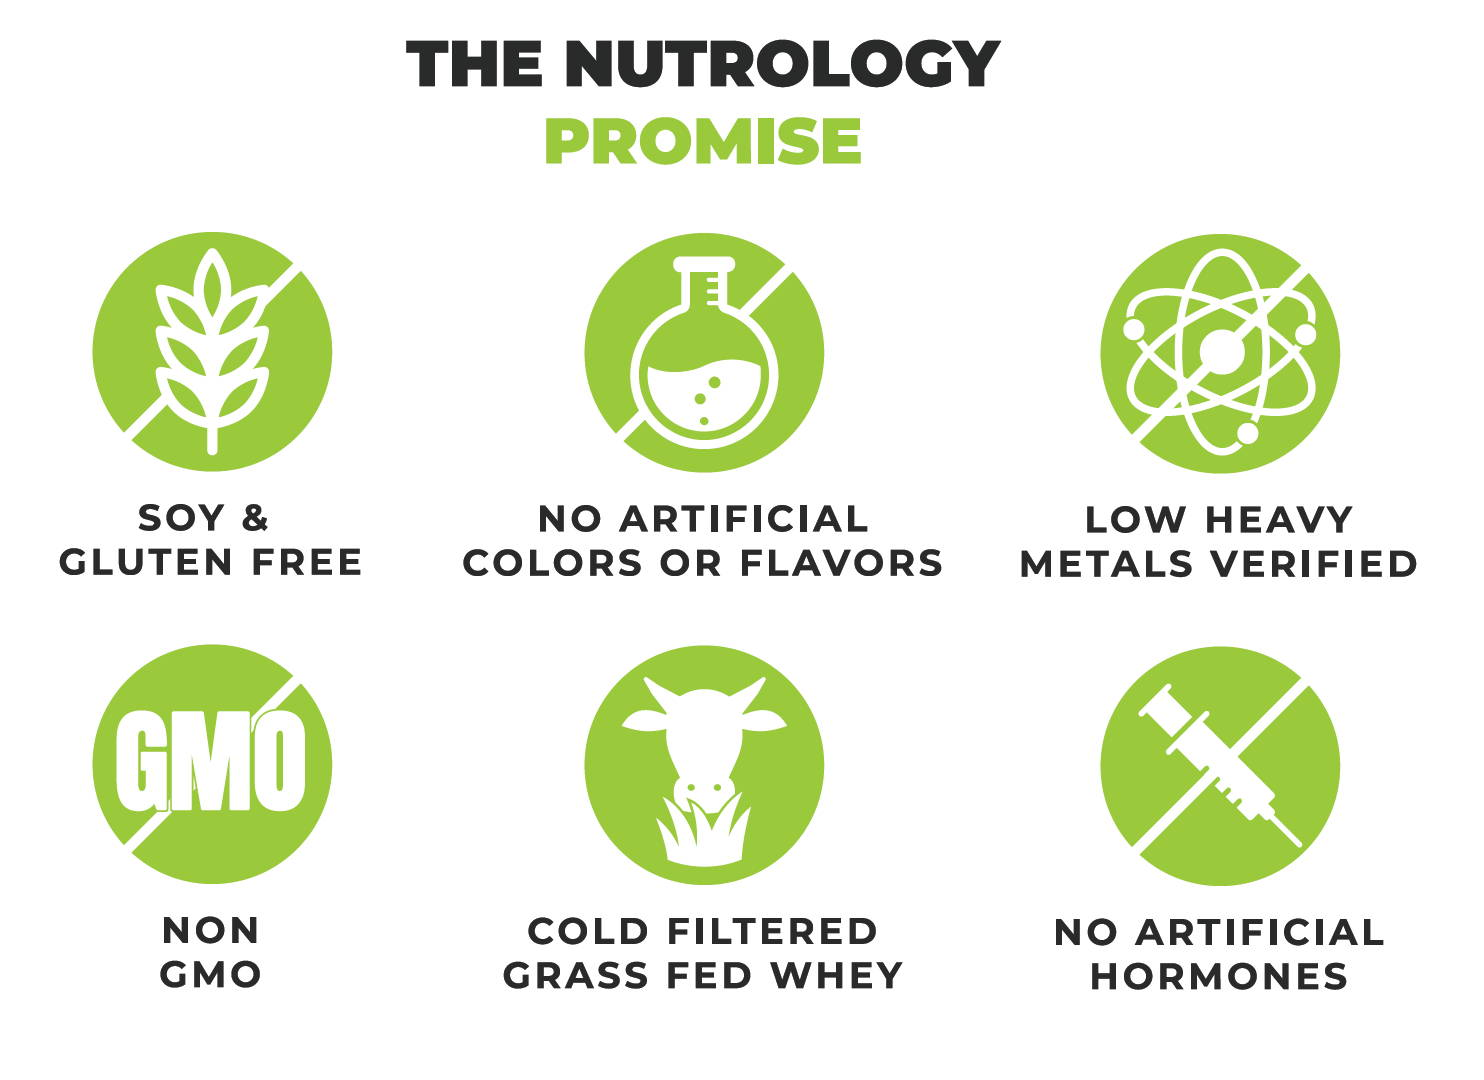 The nutrology promise grass fed whey infographic